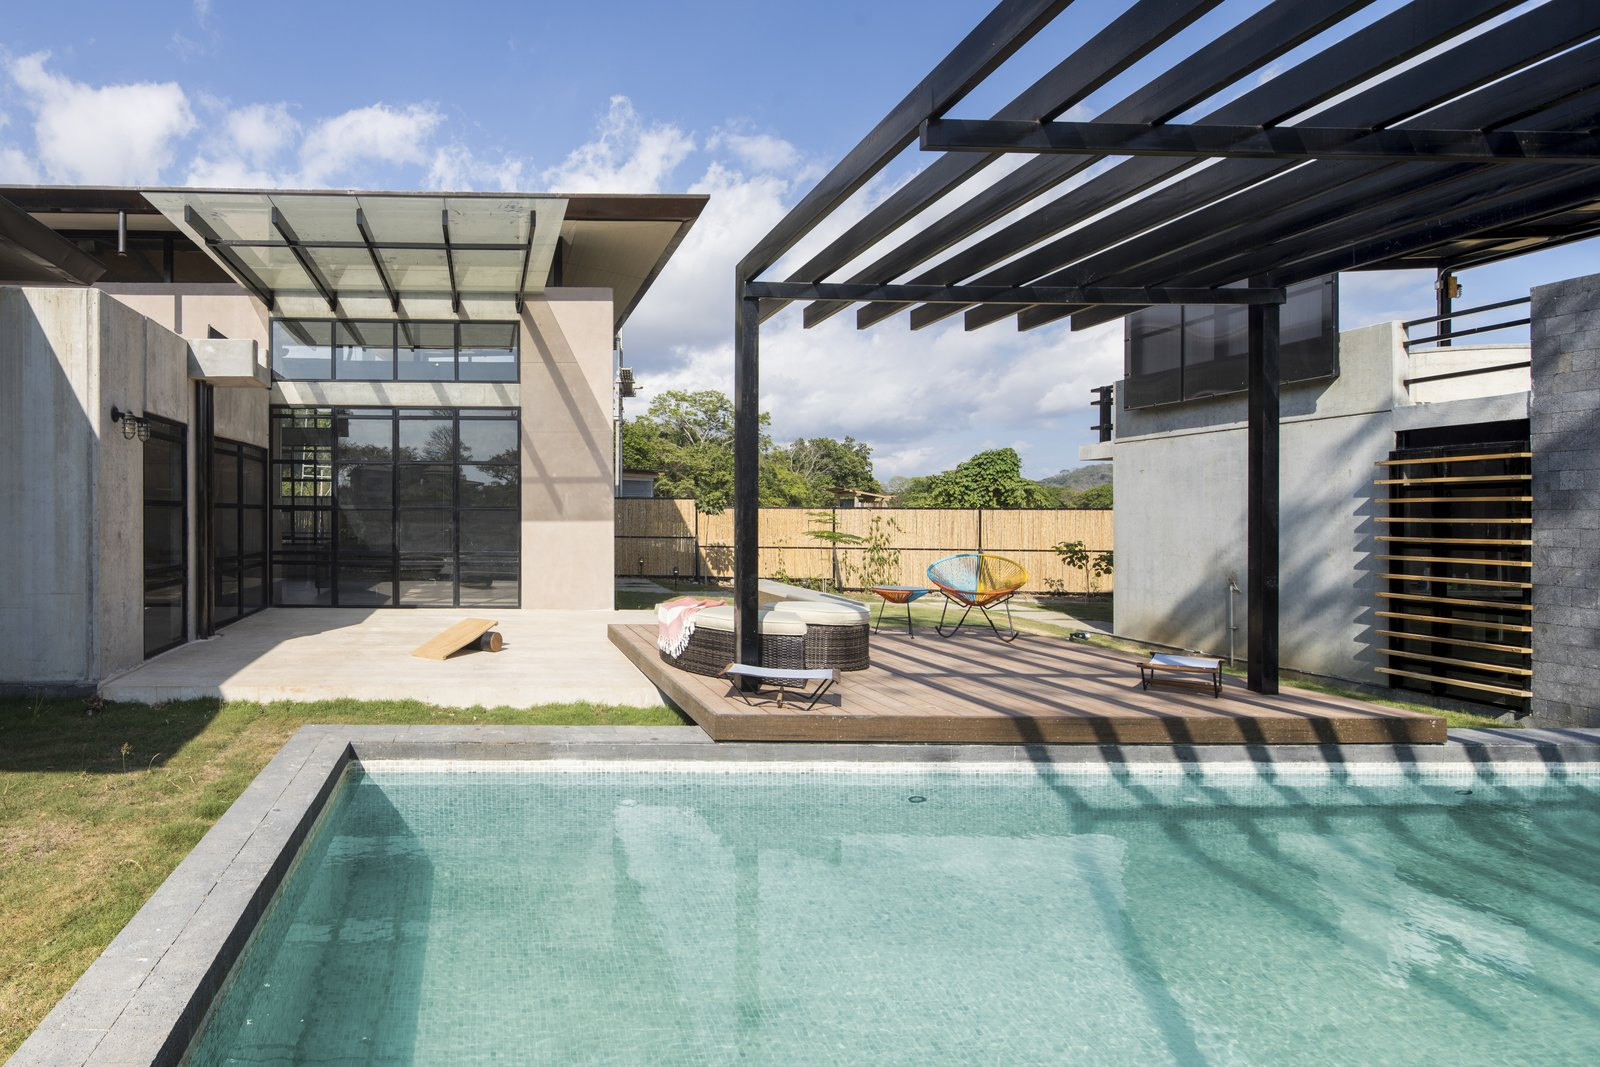 The layout of the three buildings creates a private garden space within the site.